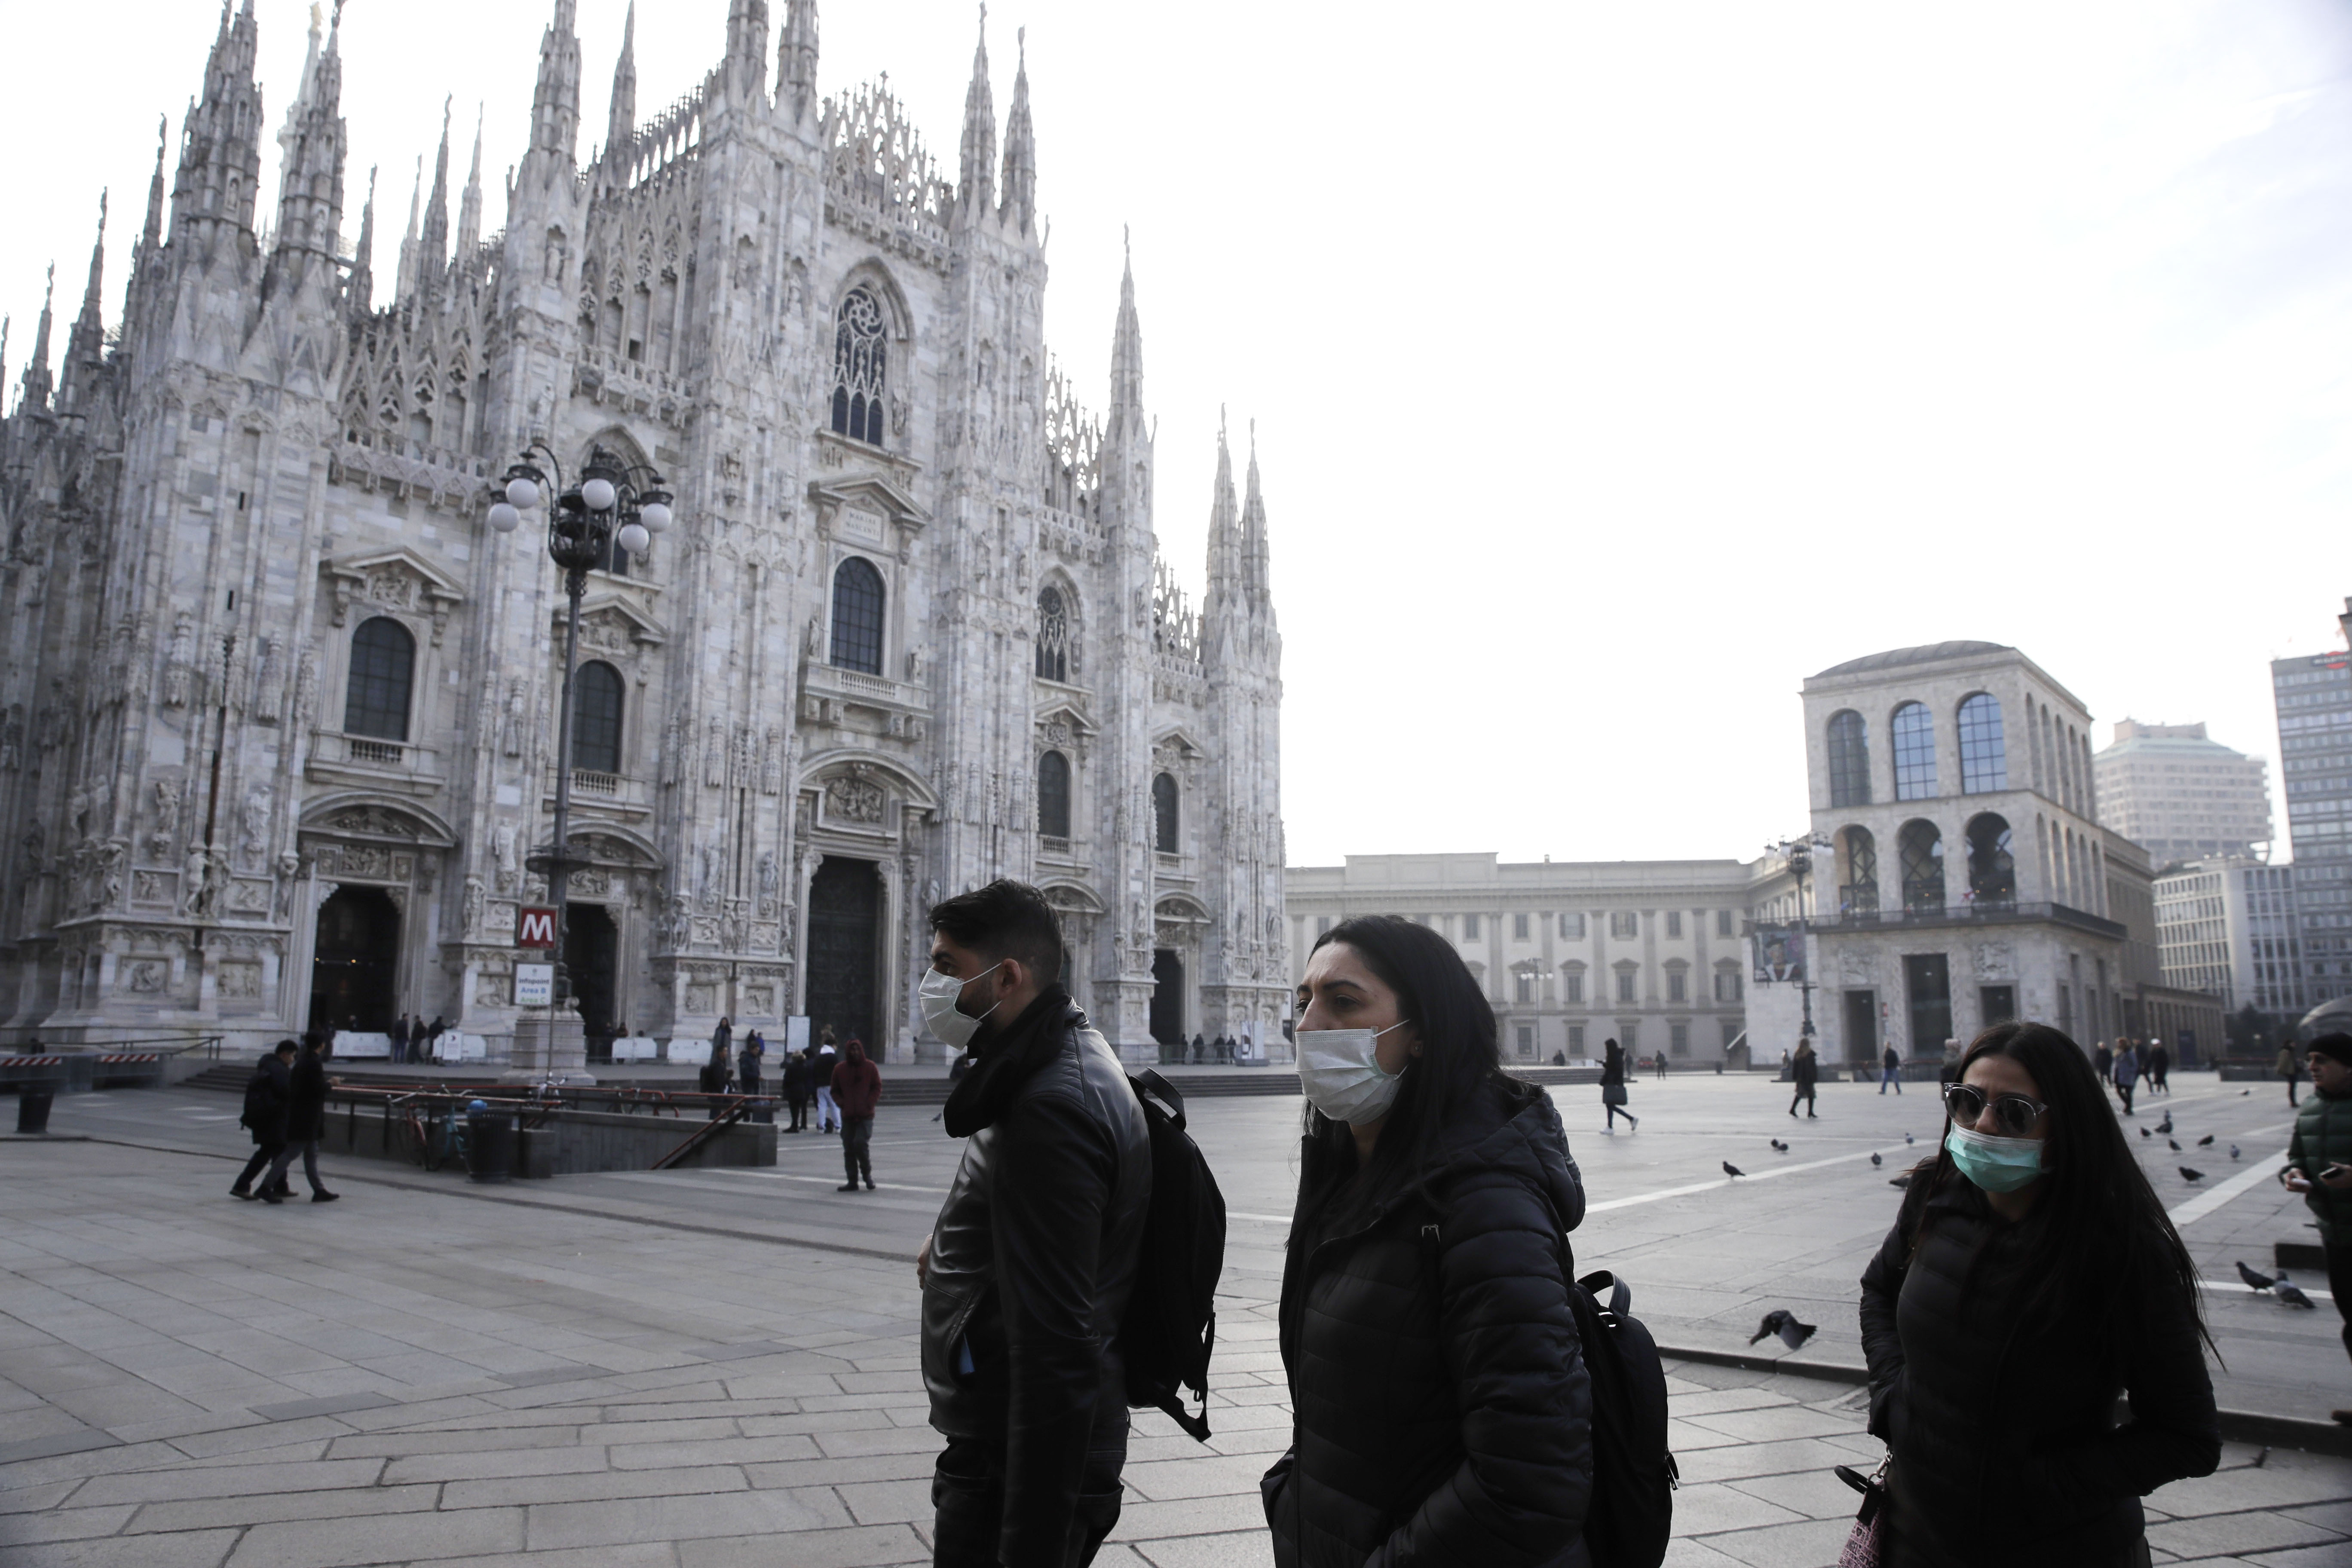 People wearing sanitary masks walk past the Duomo gothic cathedral in Milan, Italy, on Feb. 23, 2020.